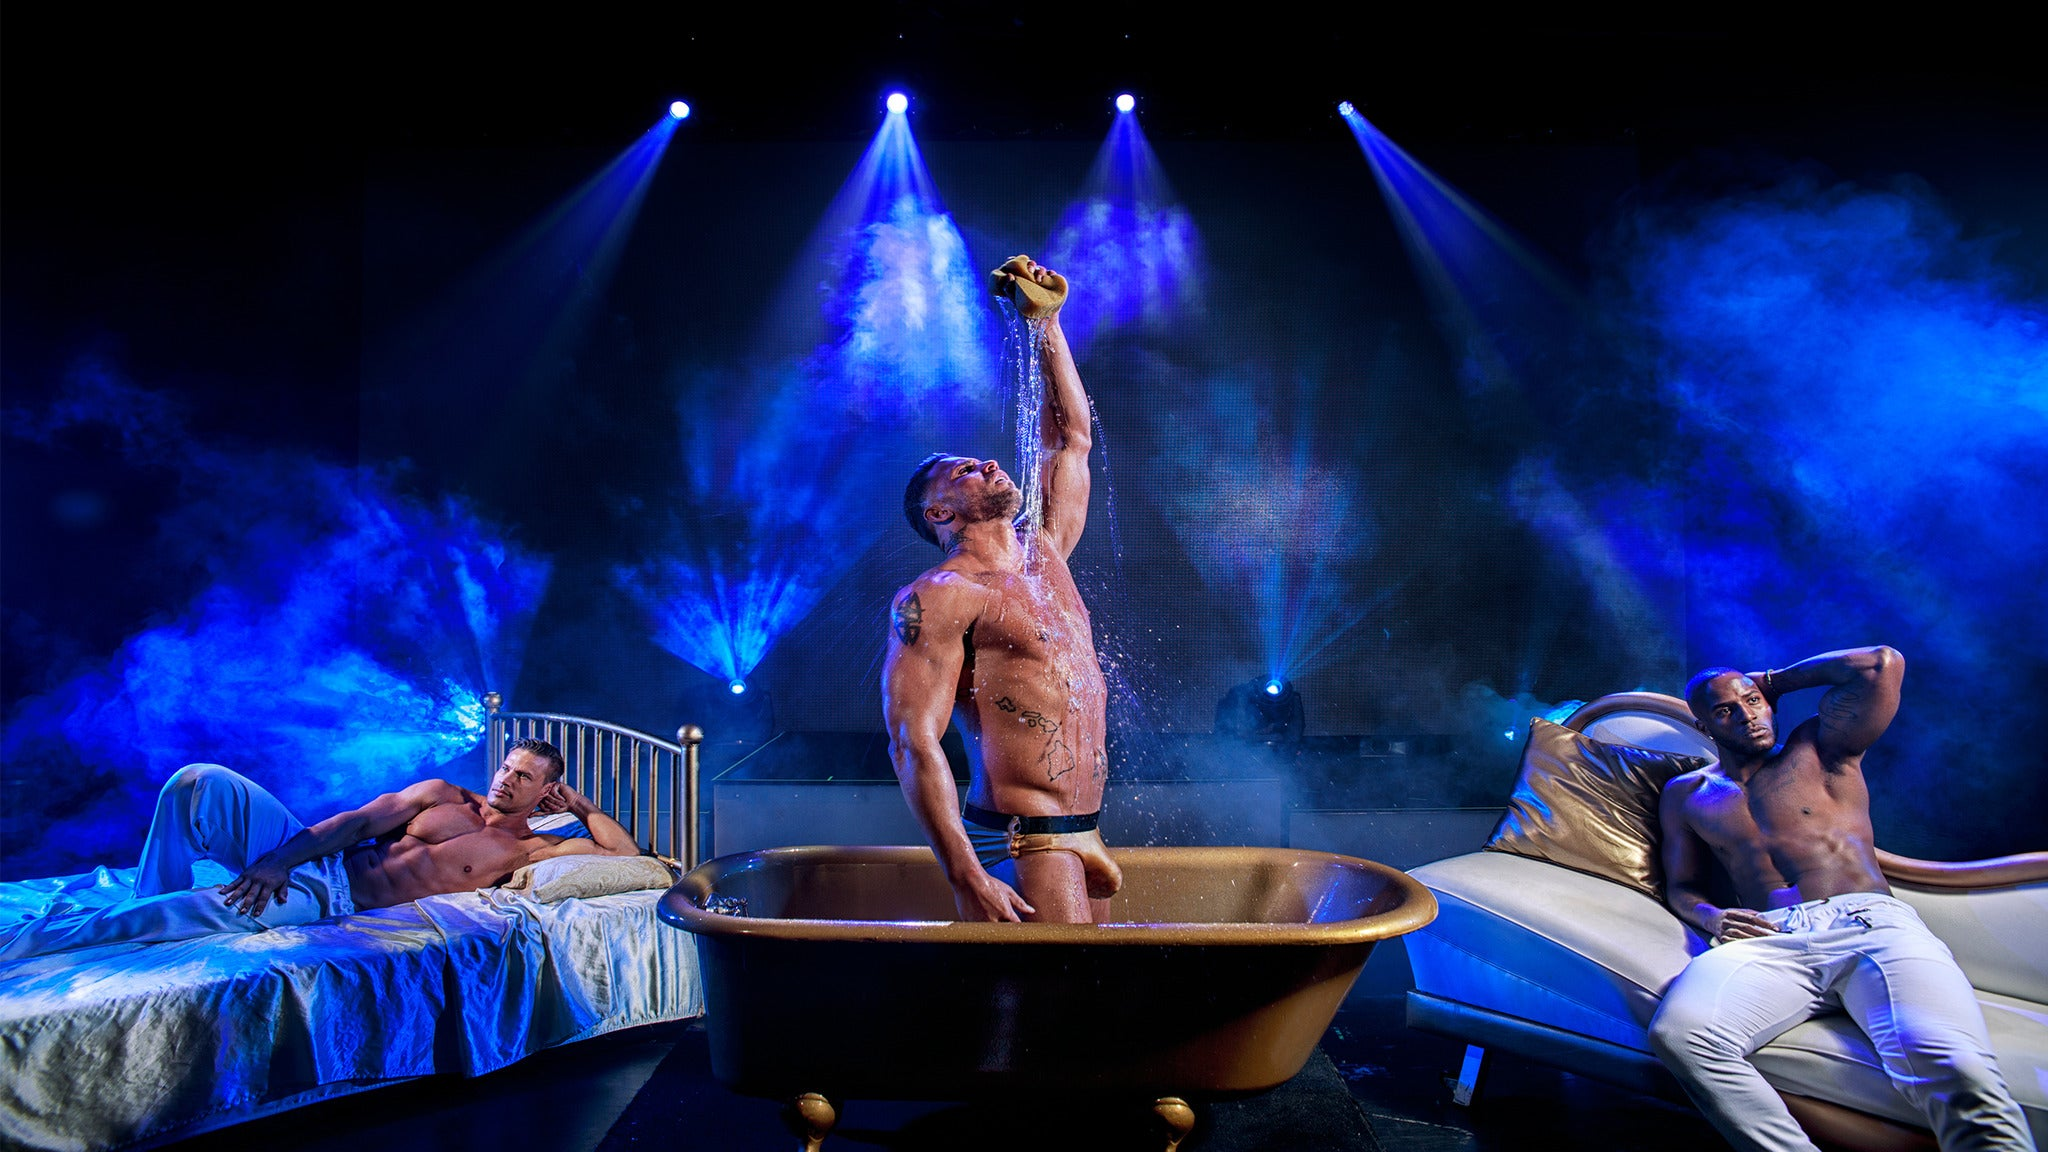 Chippendales: Let's Misbehave 2019 Tour at The Queen